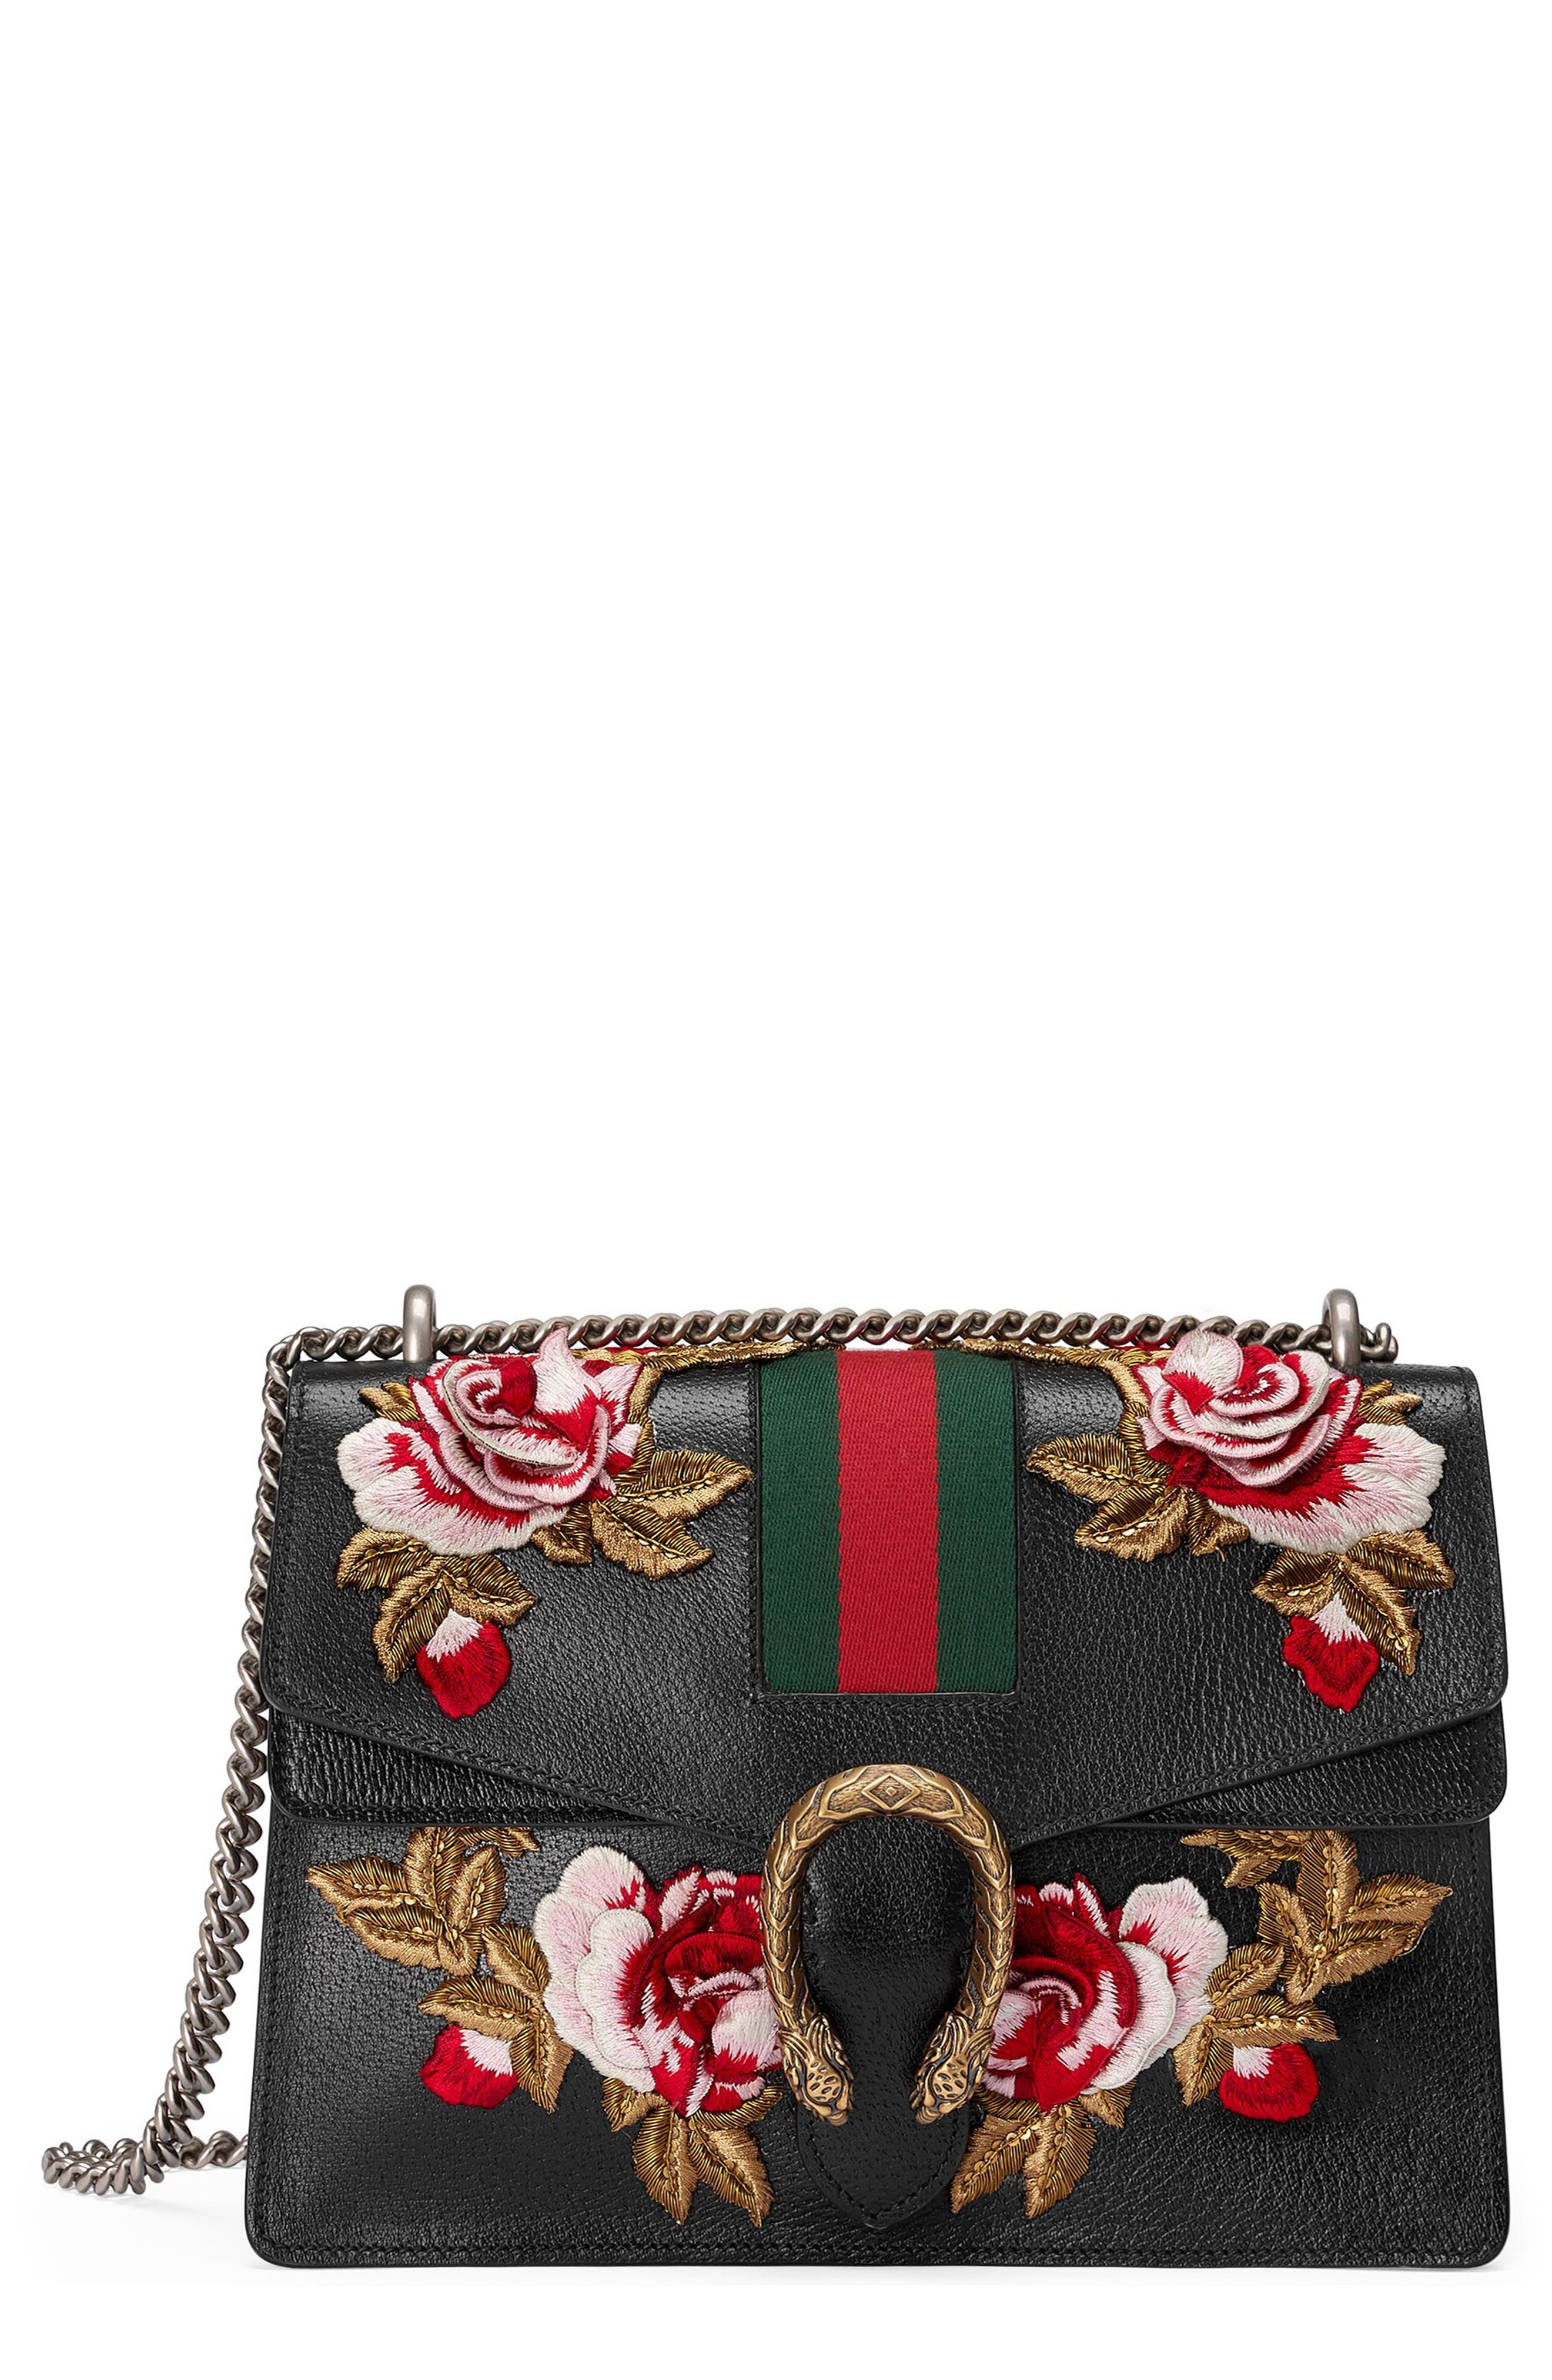 GUCCI Medium Dionysus Embroidered Roses Leather Shoulder Bag